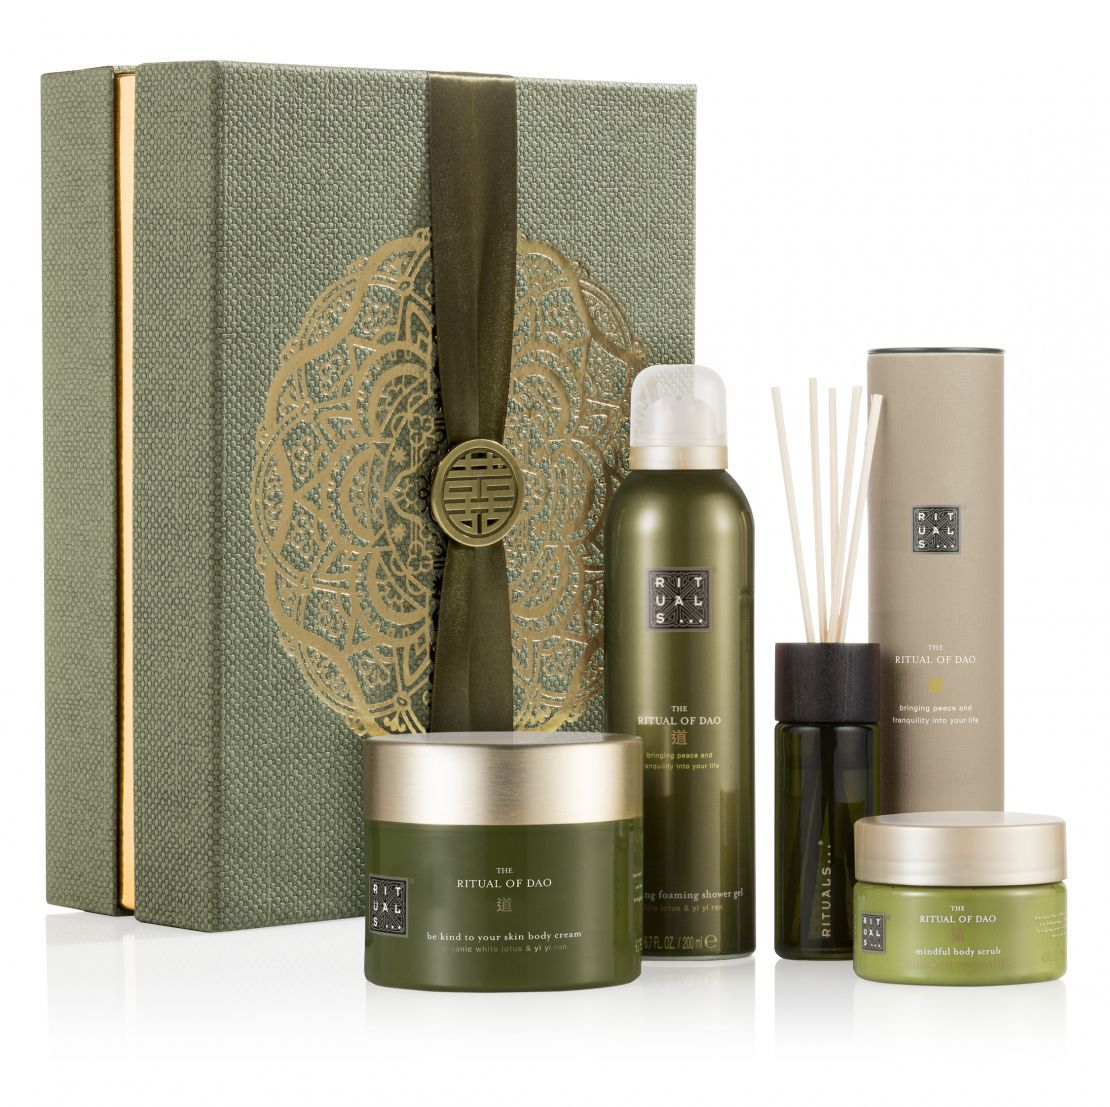 Rituals Dao collection